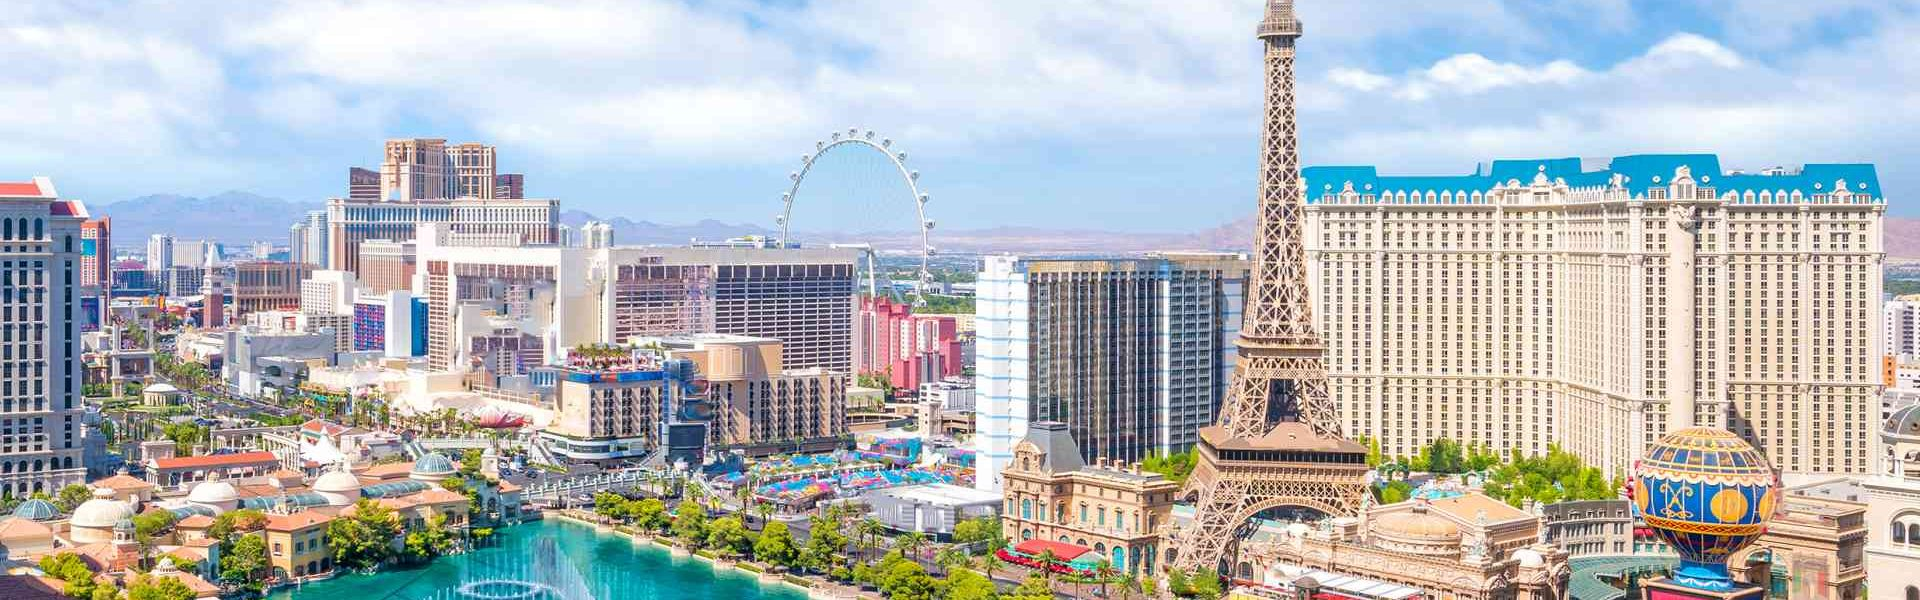 Win Big At These 13 Awesome Hotels In Las Vegas With No Resort Fees From 35 Hotelscombined Win Big At These 13 Awesome Hotels In Las Vegas With No Resort Fees From 35